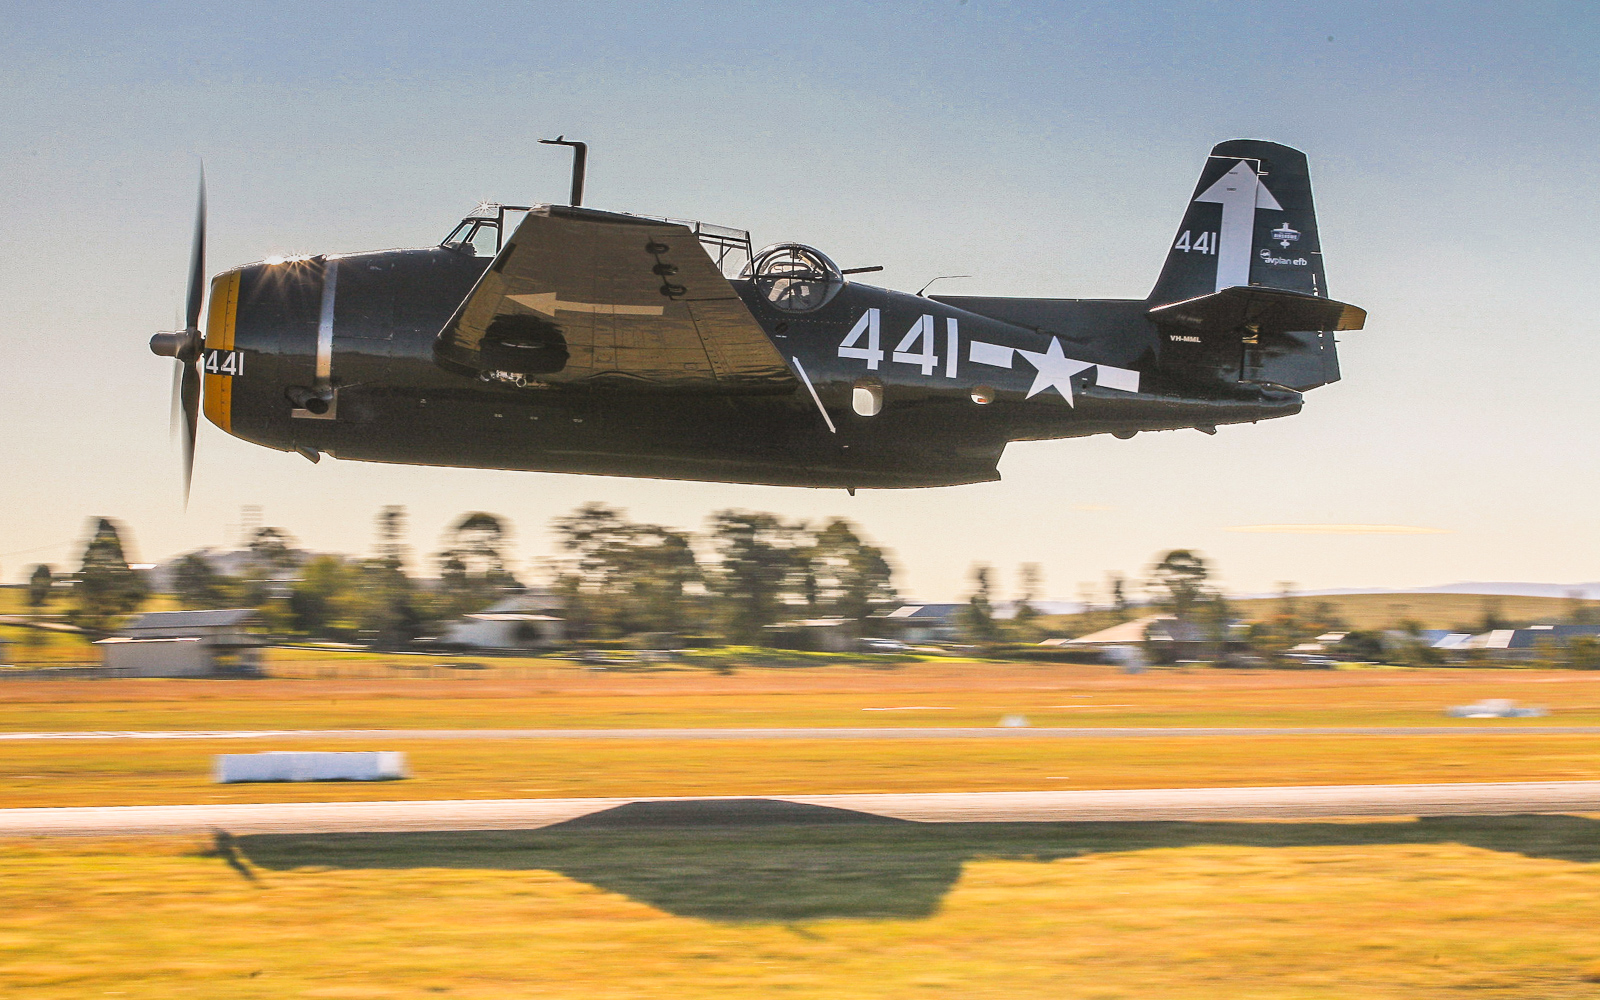 Paul Bennet's marvelous TBM-3 Avenger roars into the air at the Maitland Air Show. (photo by Phil Buckley)